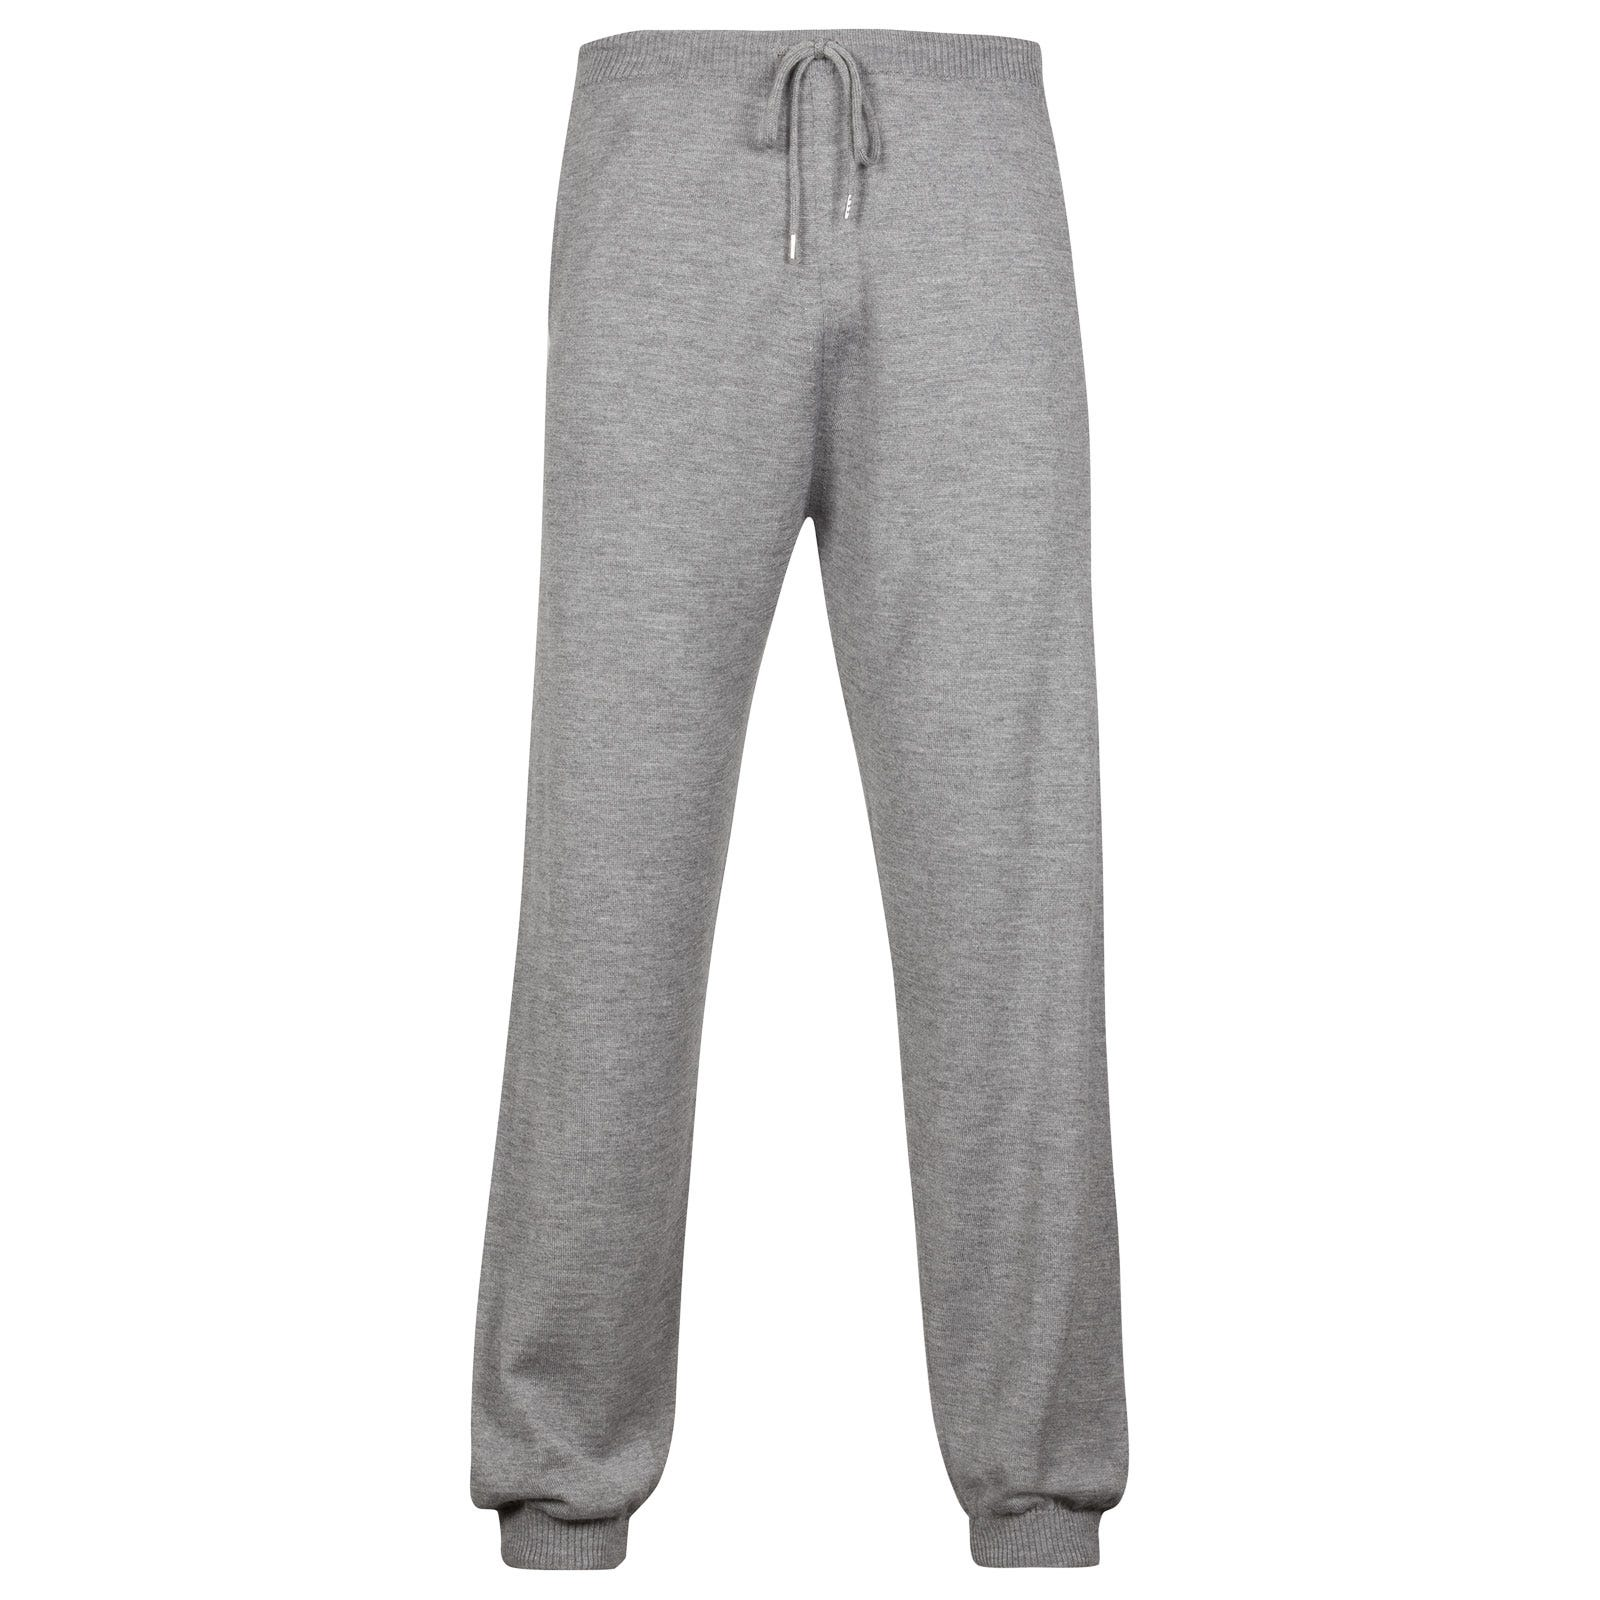 John Smedley Leats Trouser Cashmere & Silk in Silver-XL